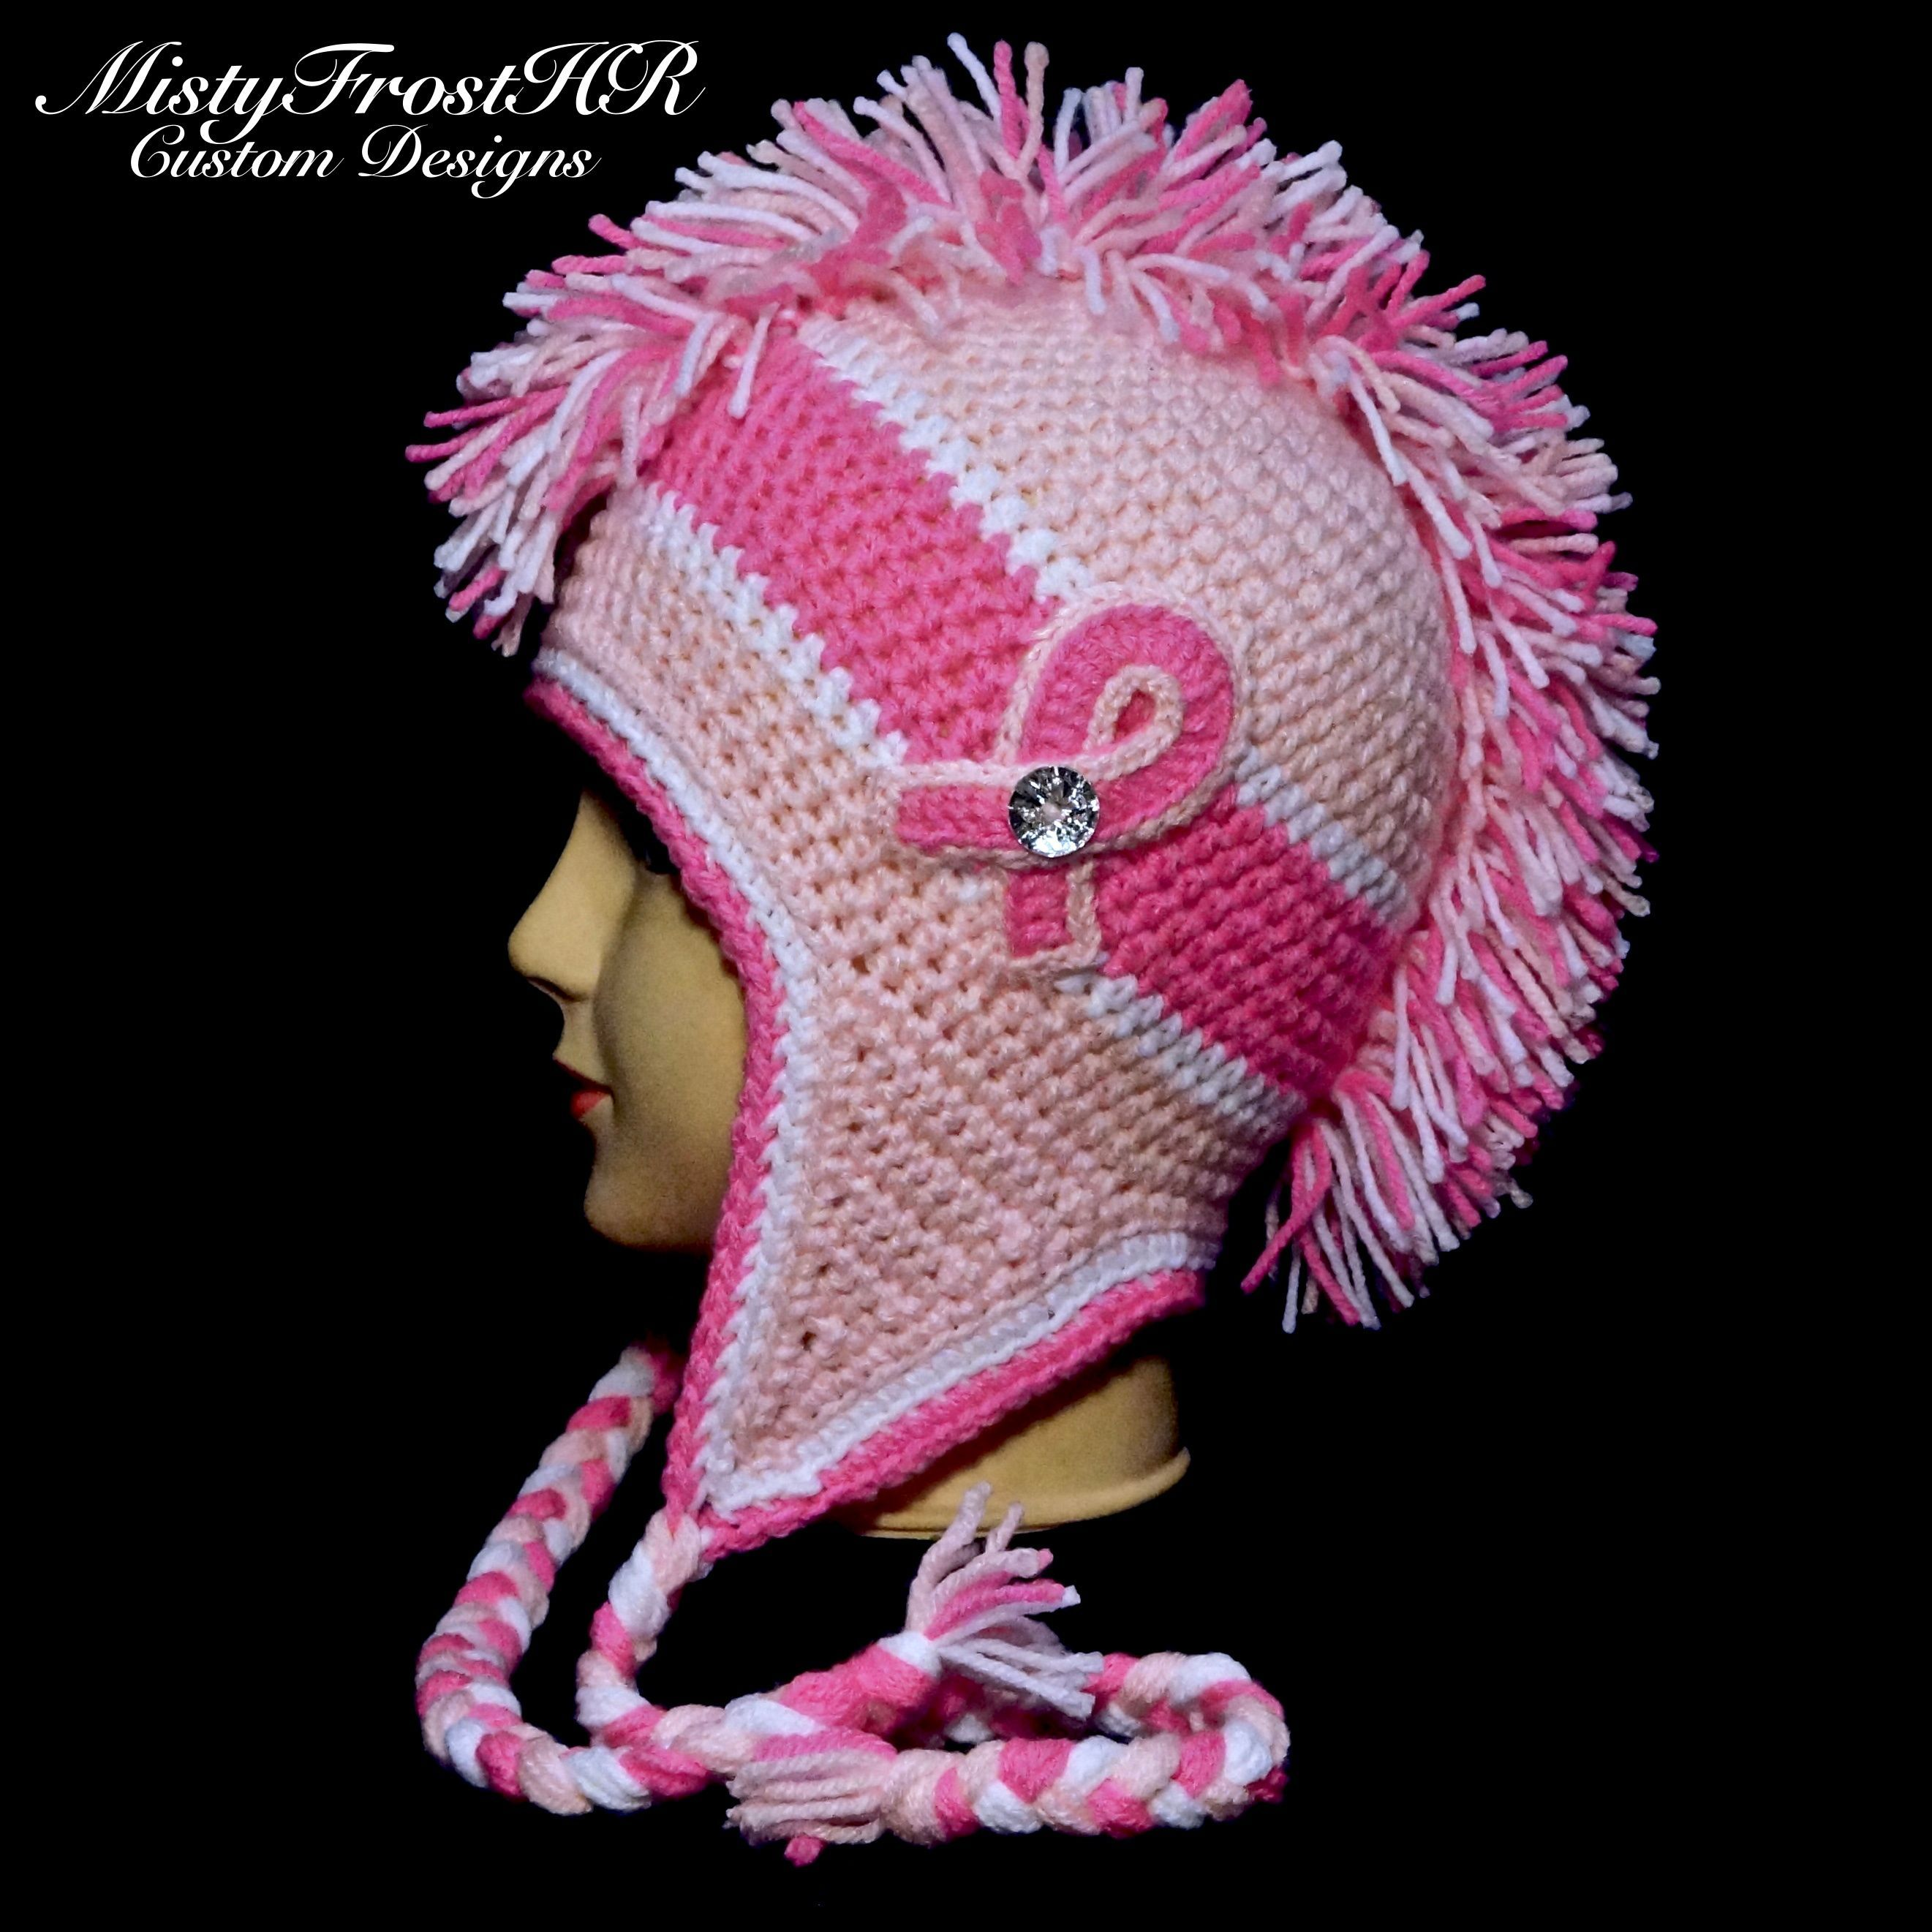 Crochet breast cancer awareness mohawk hat available in any size